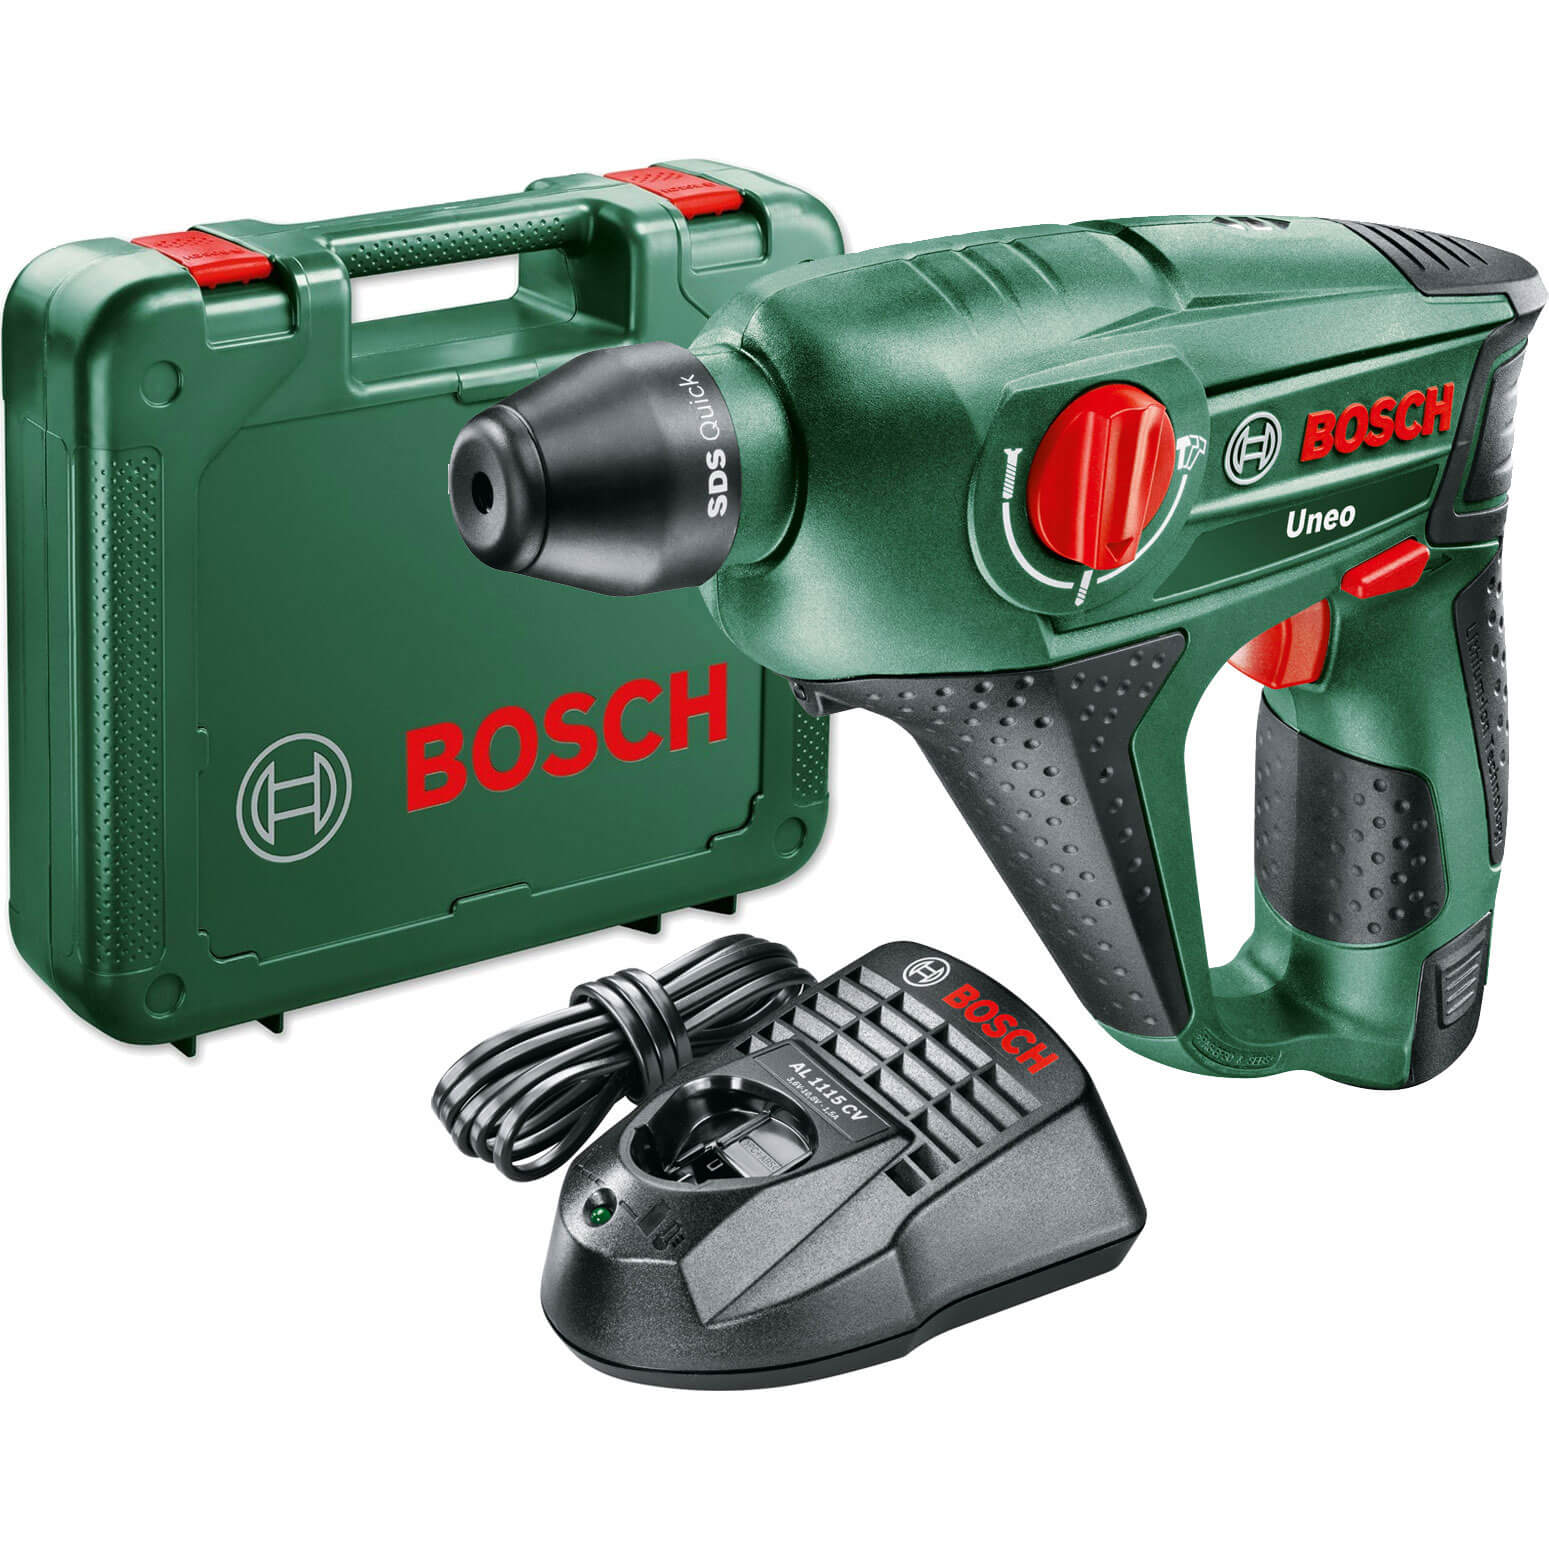 bosch uneo 10 8 li2 cordless hammer drill 1 x 2ah li ion charger case. Black Bedroom Furniture Sets. Home Design Ideas